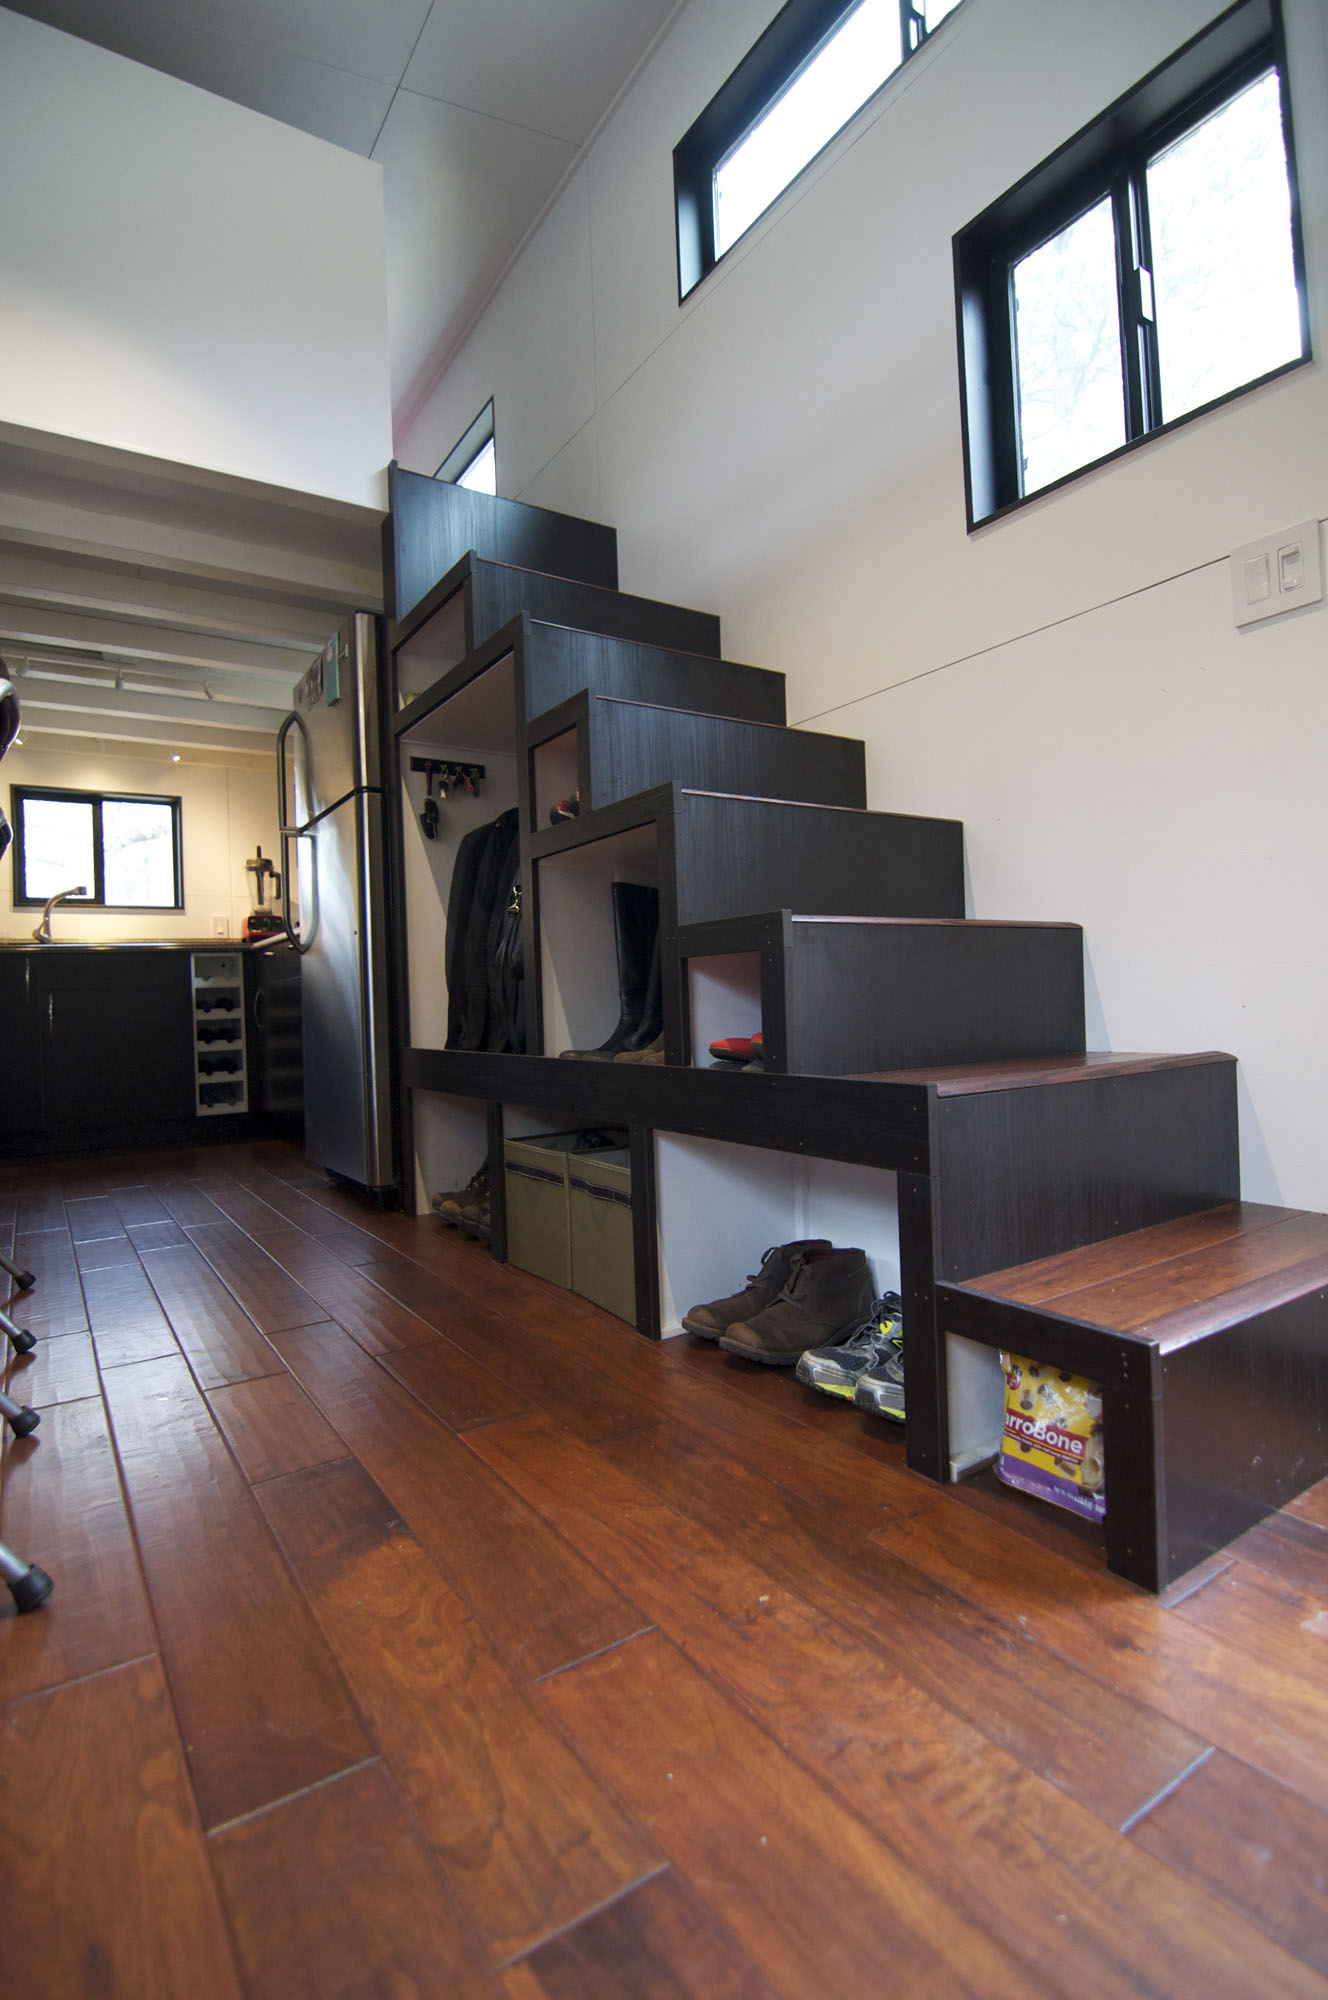 Stairs with Storage Space, Tiny House on Wheels